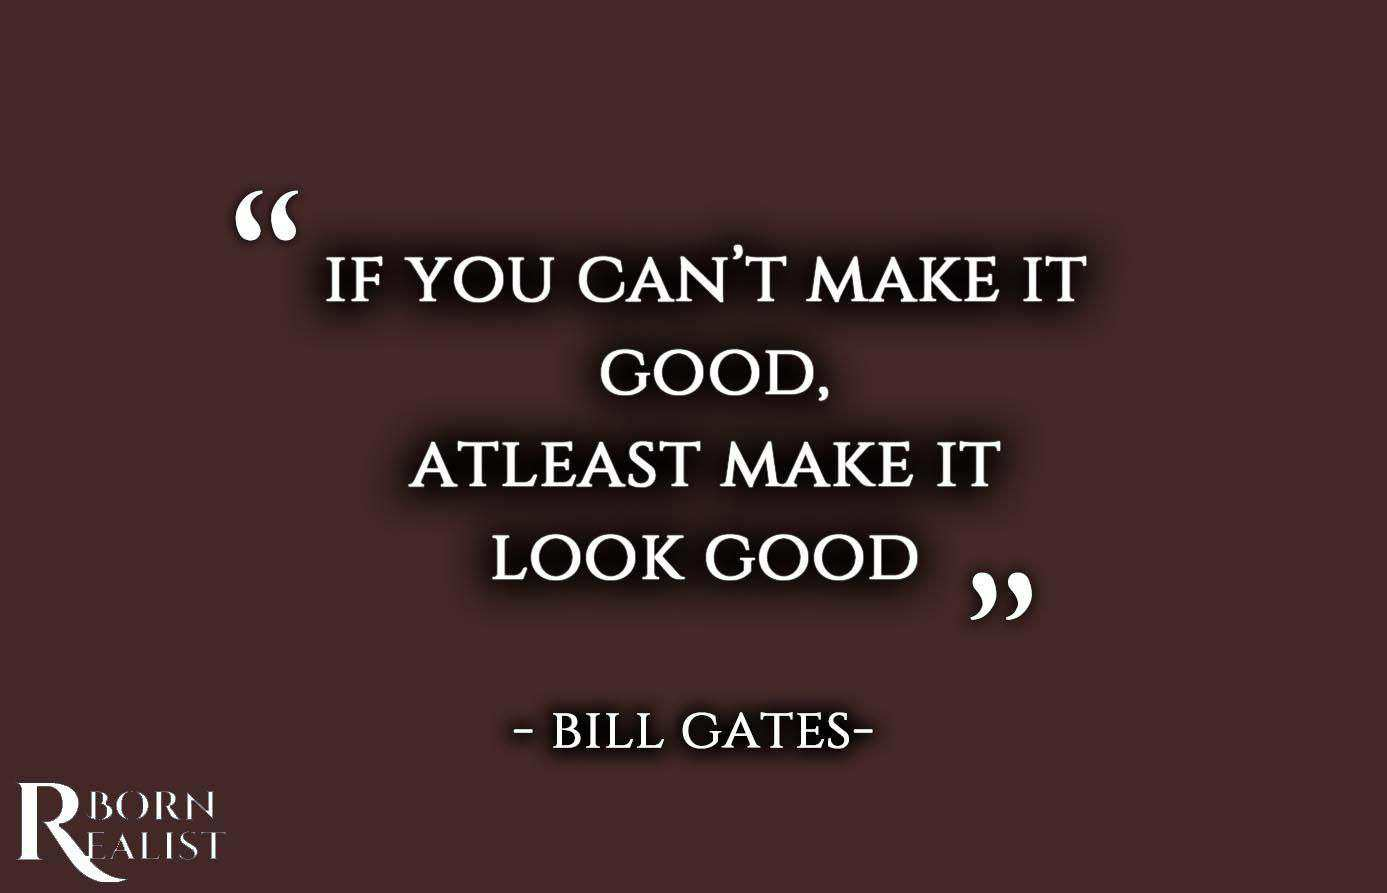 Quotes About Inspiring Others Bill Gates Quotes  Bill Gates Quotes About Success